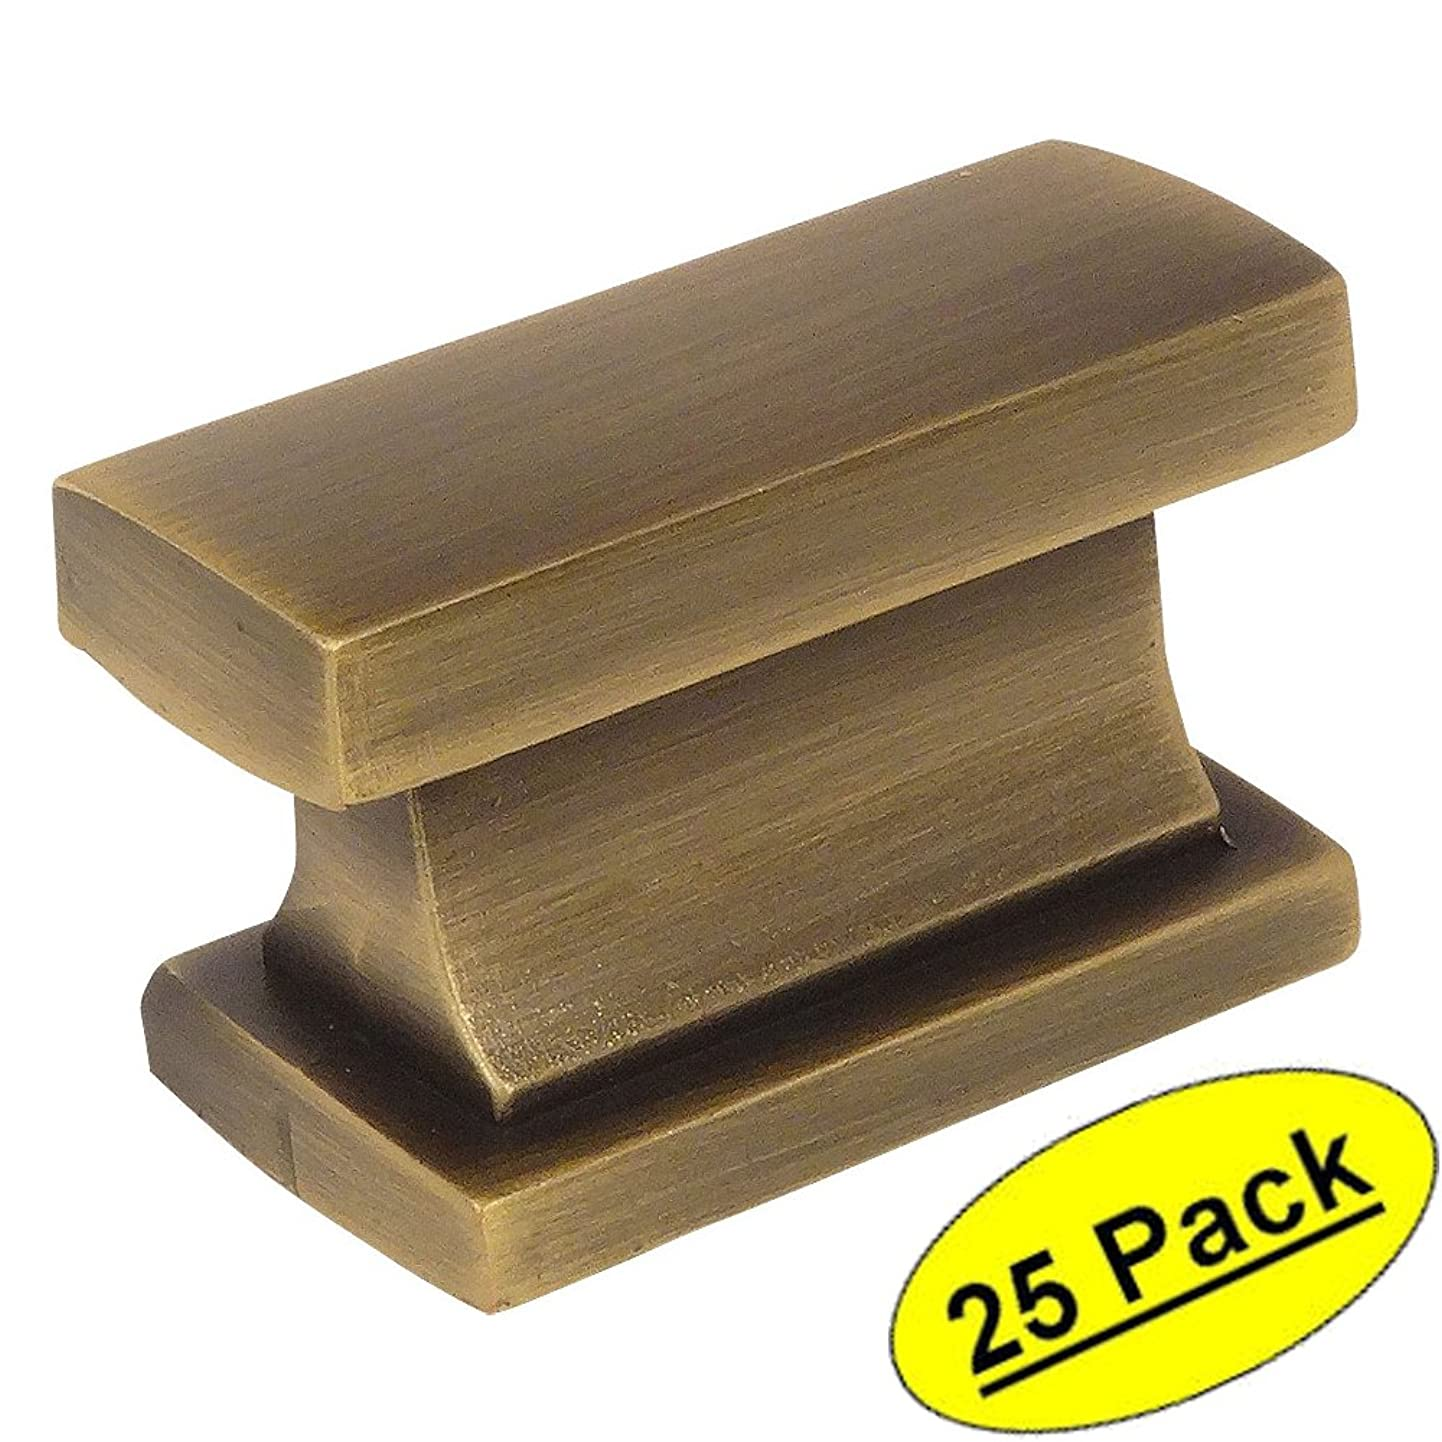 Cosmas 701BAB Brushed Antique Brass Contemporary Cabinet Hardware Knob - 1-7/16